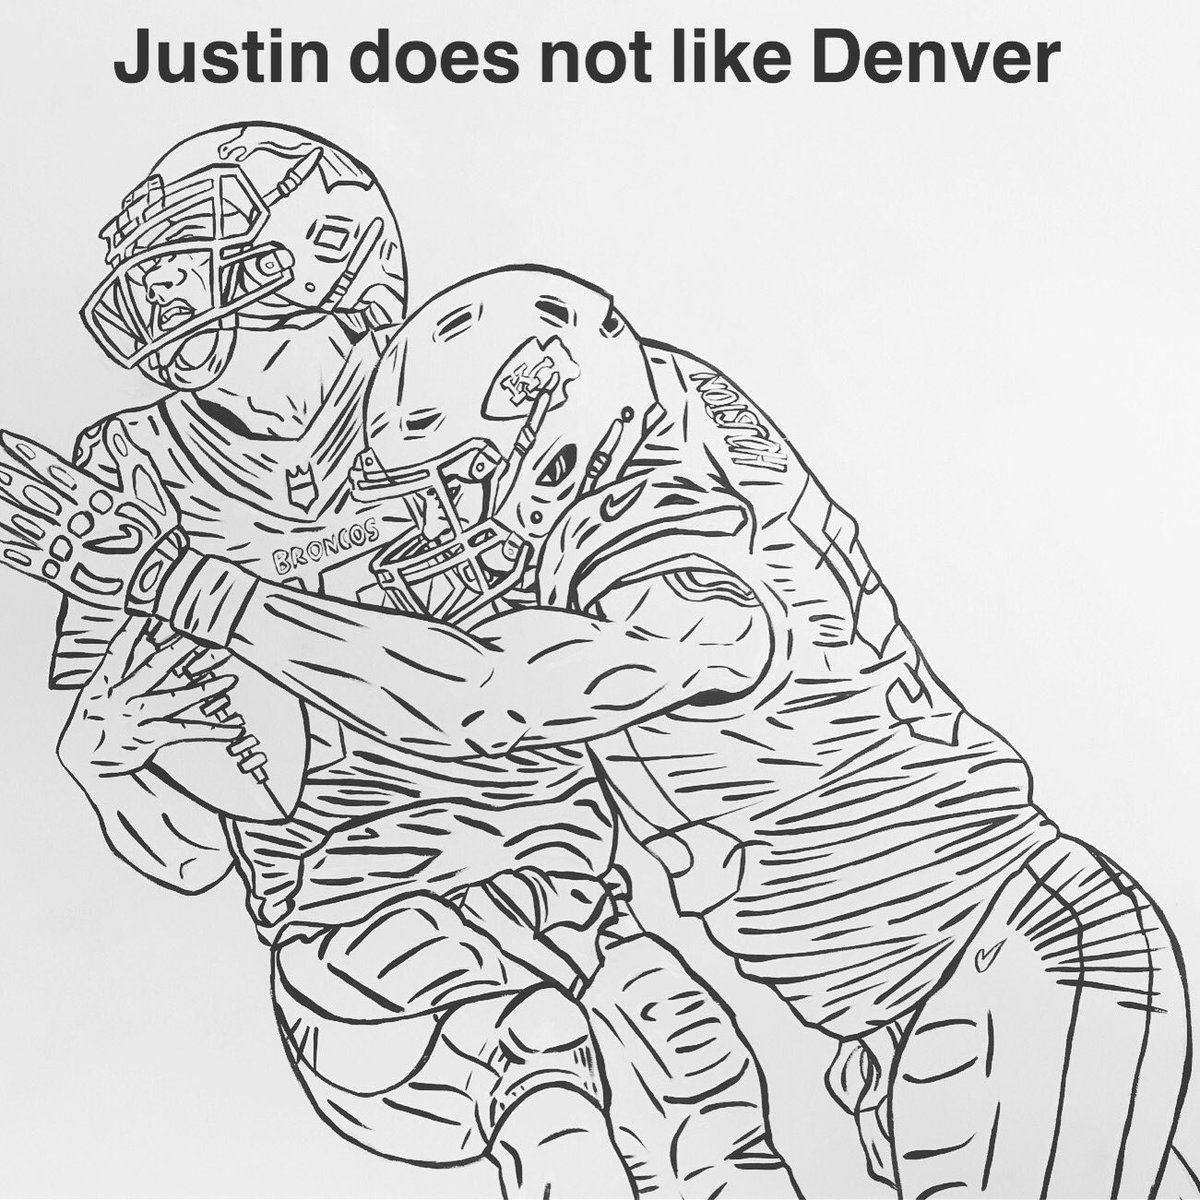 We all feel ya on that one Justin!#CoreyJonesArtStudios #TheArtistChief #ChiefsKingdom #Chiefs #NFL #AFC #AFCWest #Sack #Safety<br>http://pic.twitter.com/65HTbSL0OW